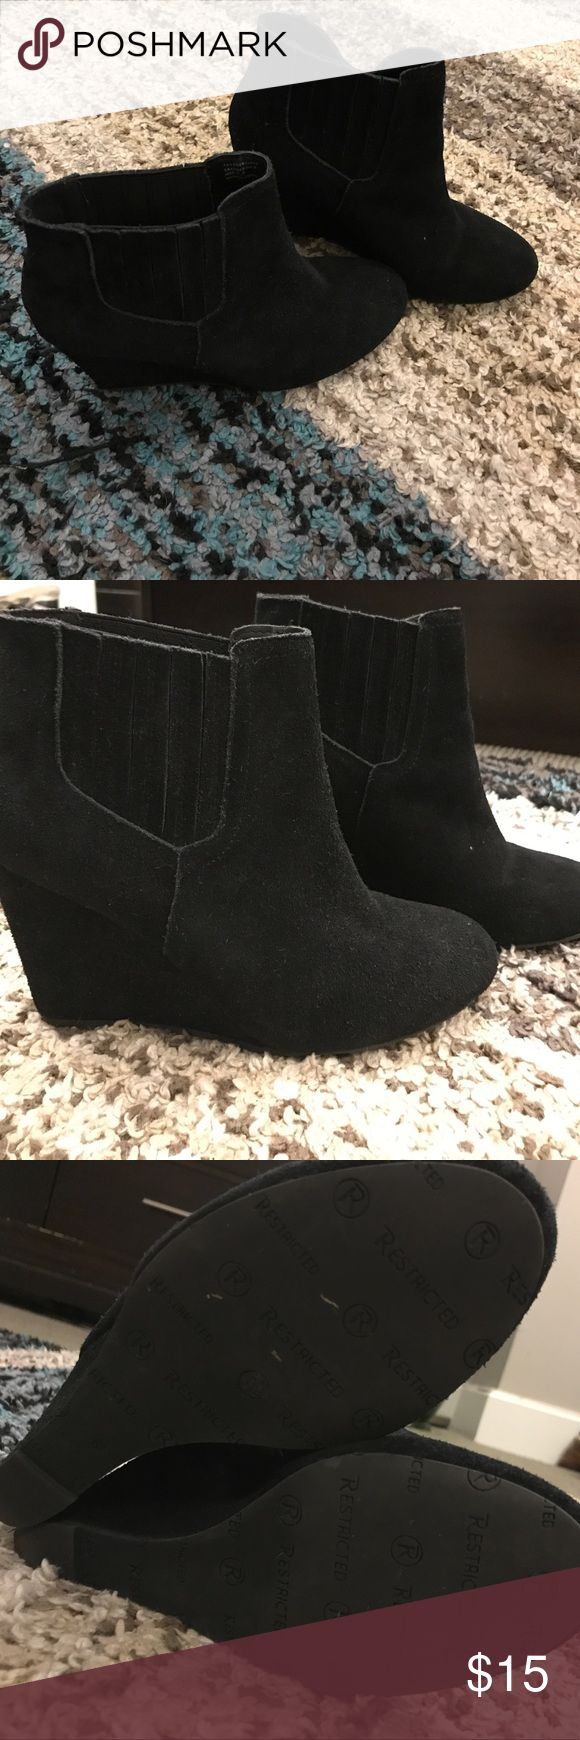 "Restricted Faux Suede Booties Cute wedge booties, just shy of 4"". Worn a couple of times, good used condition. Restricted Shoes Ankle Boots & Booties"